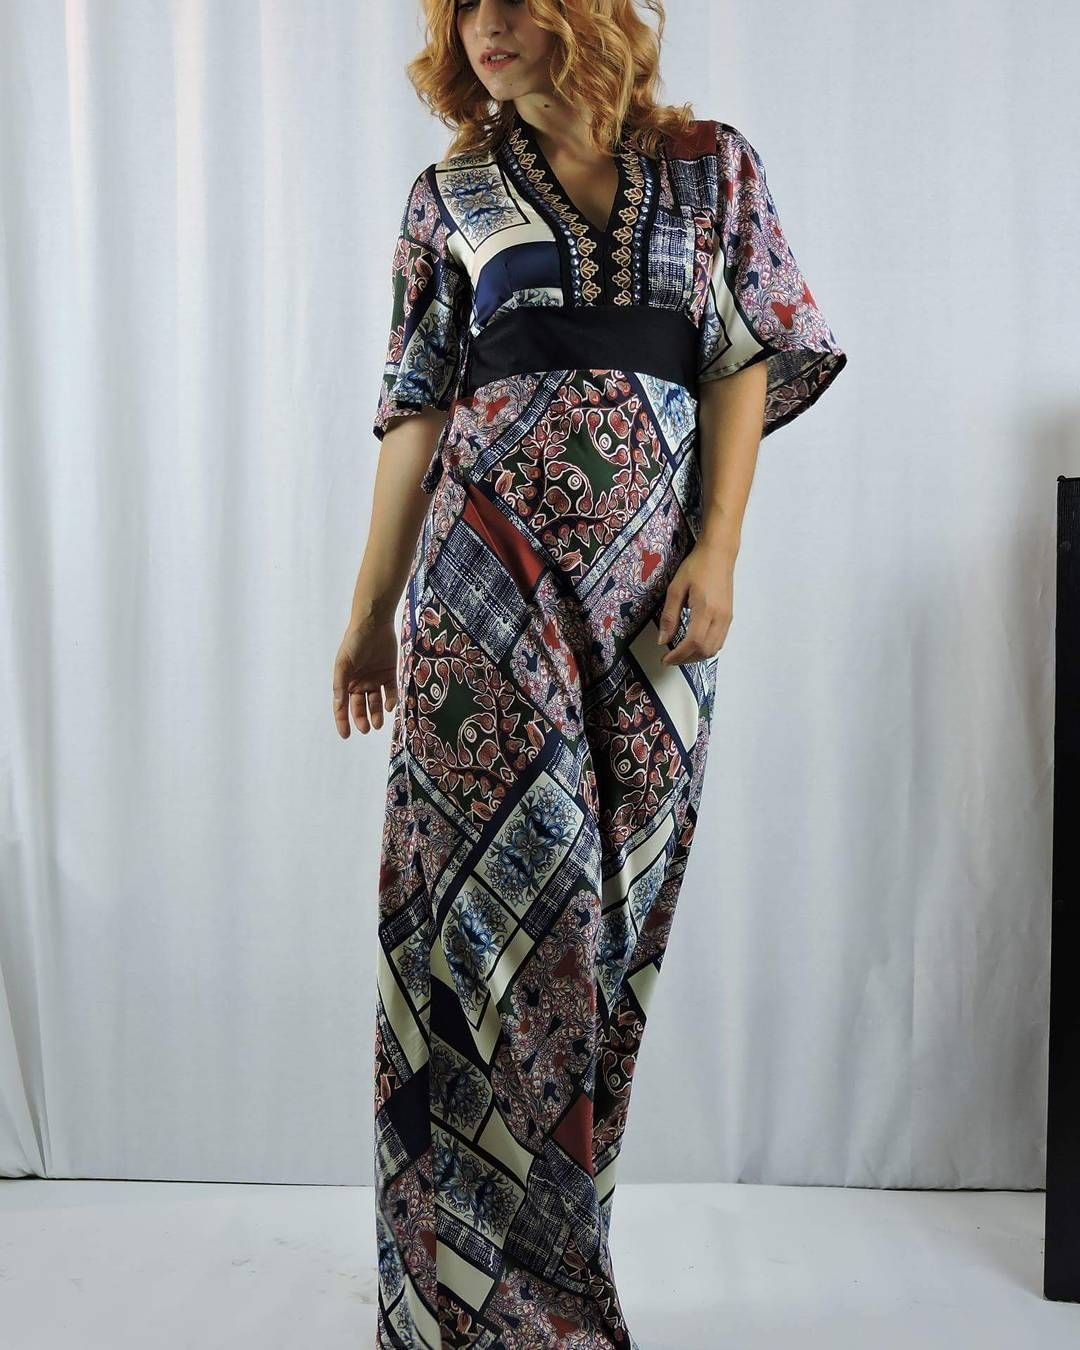 Capriccioshop newcollection dress dresses maxidress style